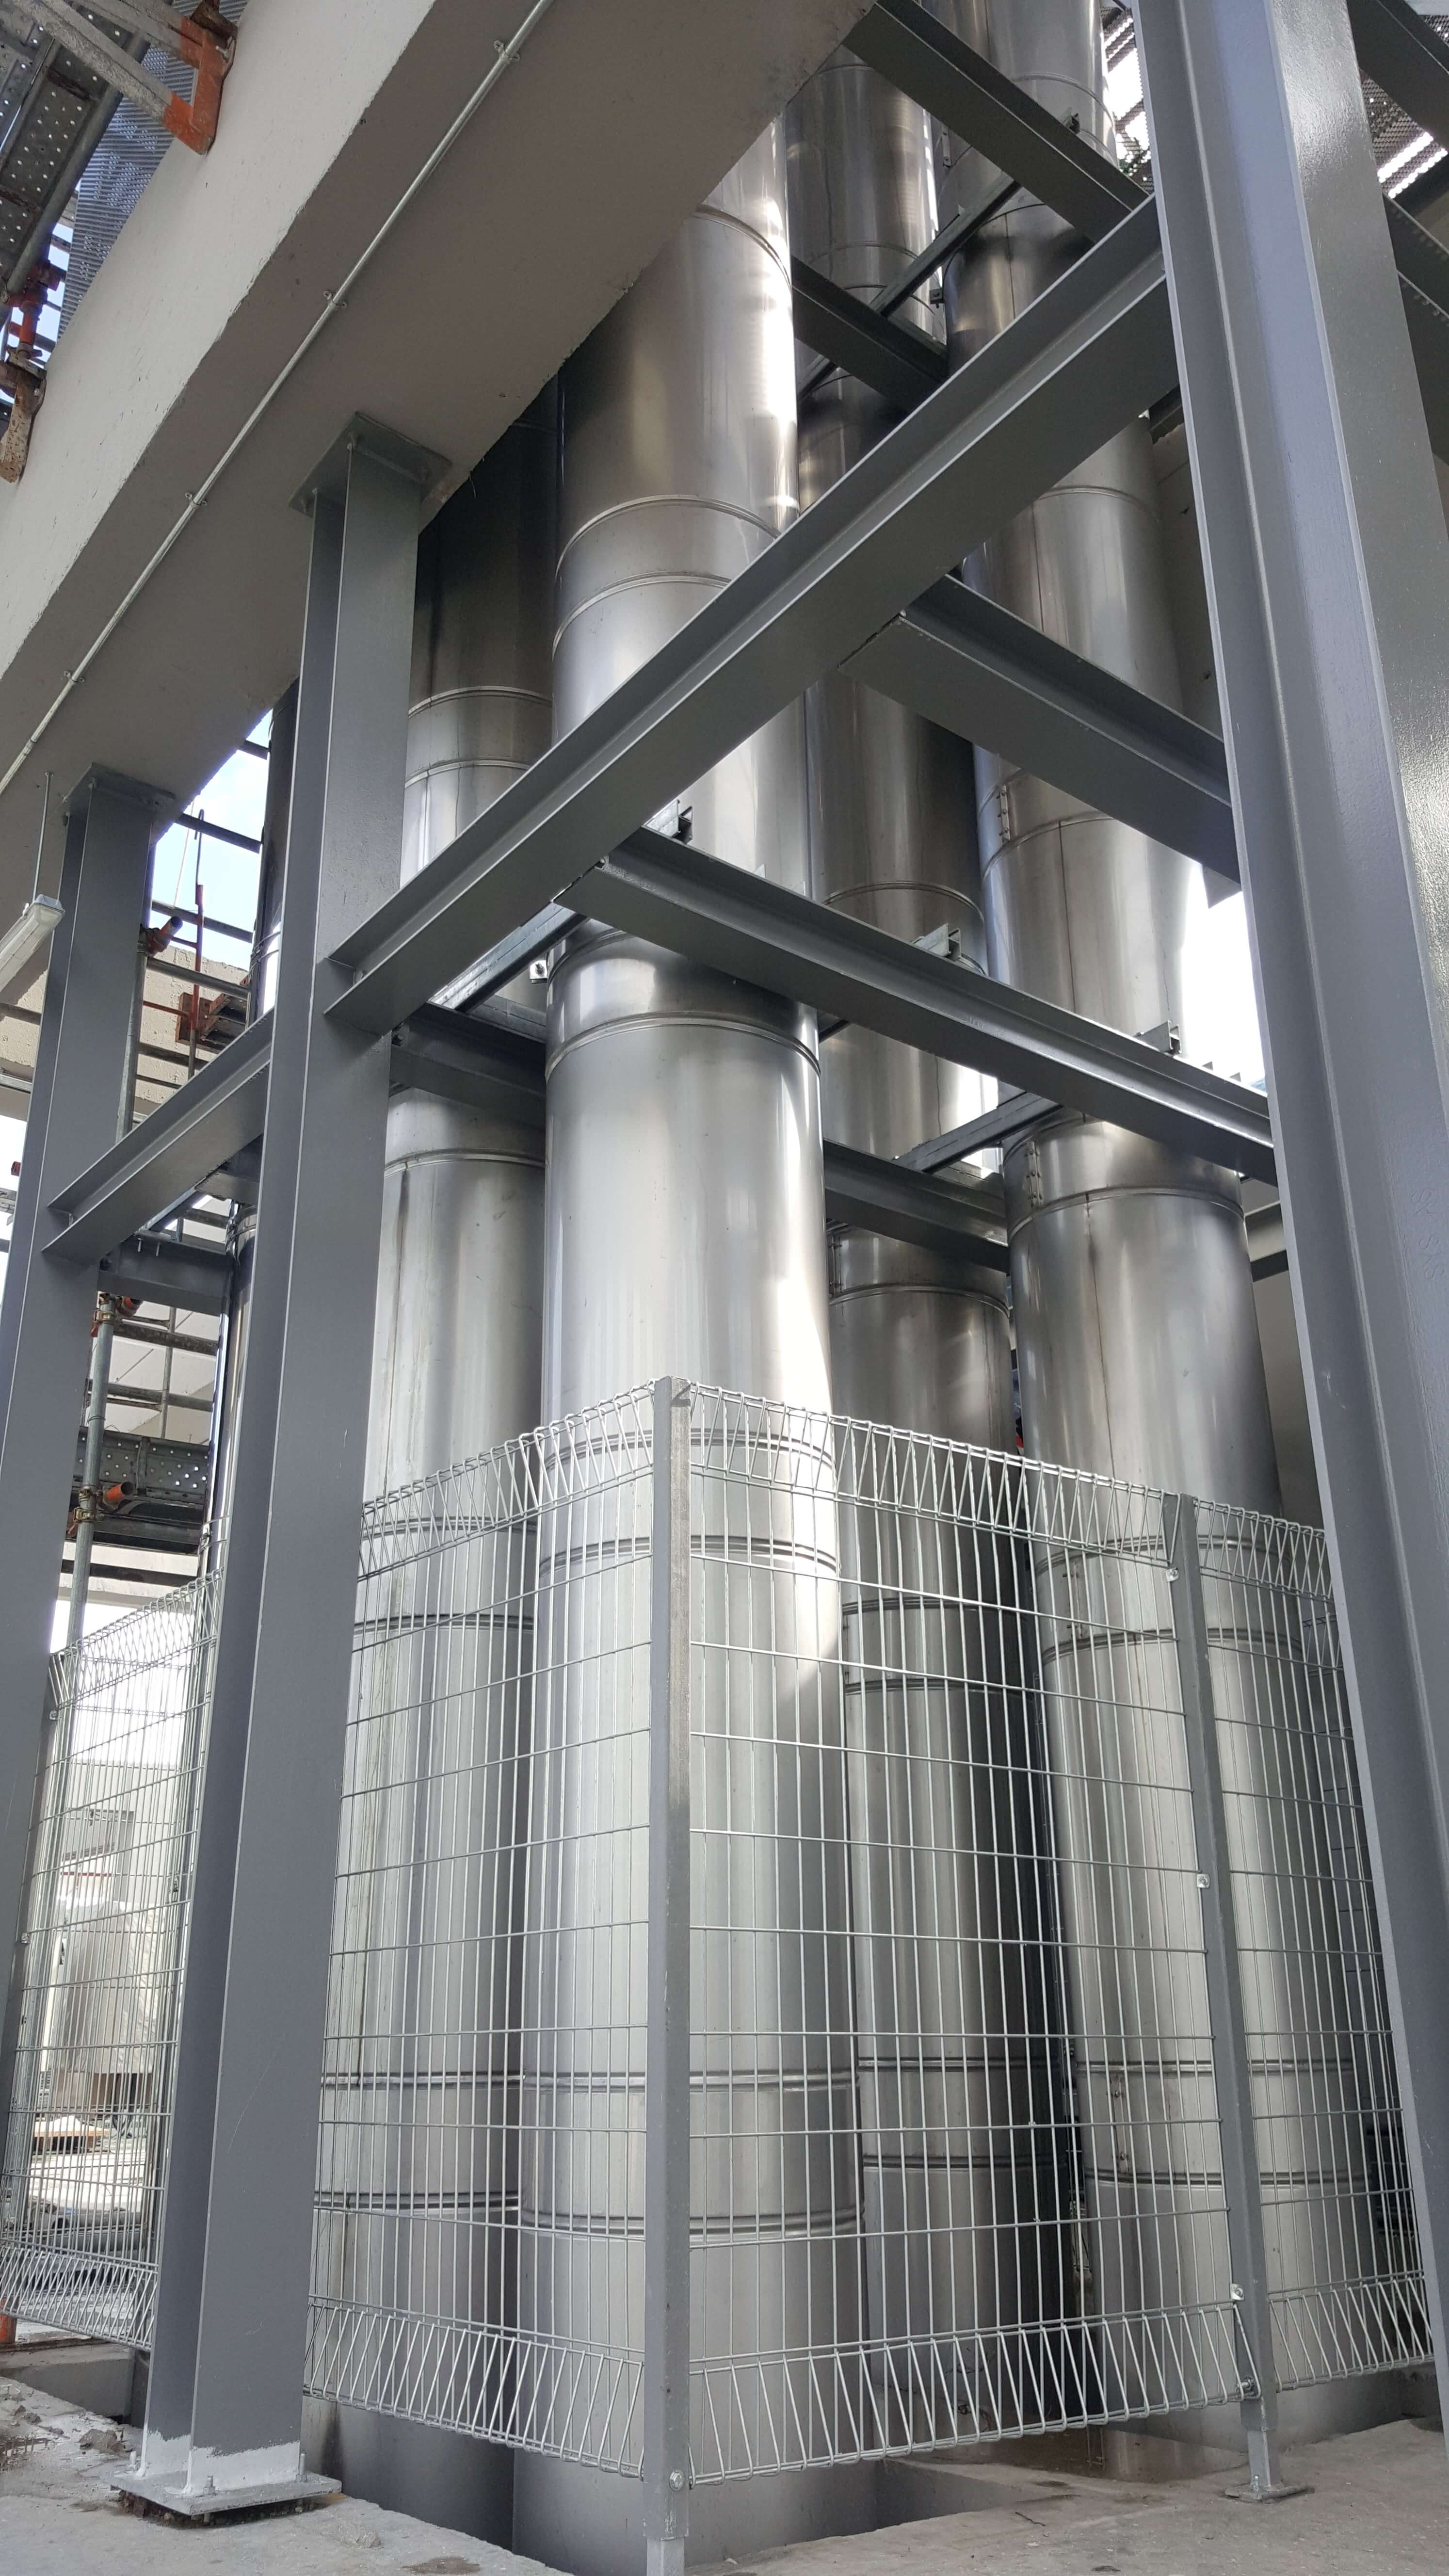 Sh Exhaust Flue Pipe System Sh Stainless Steel